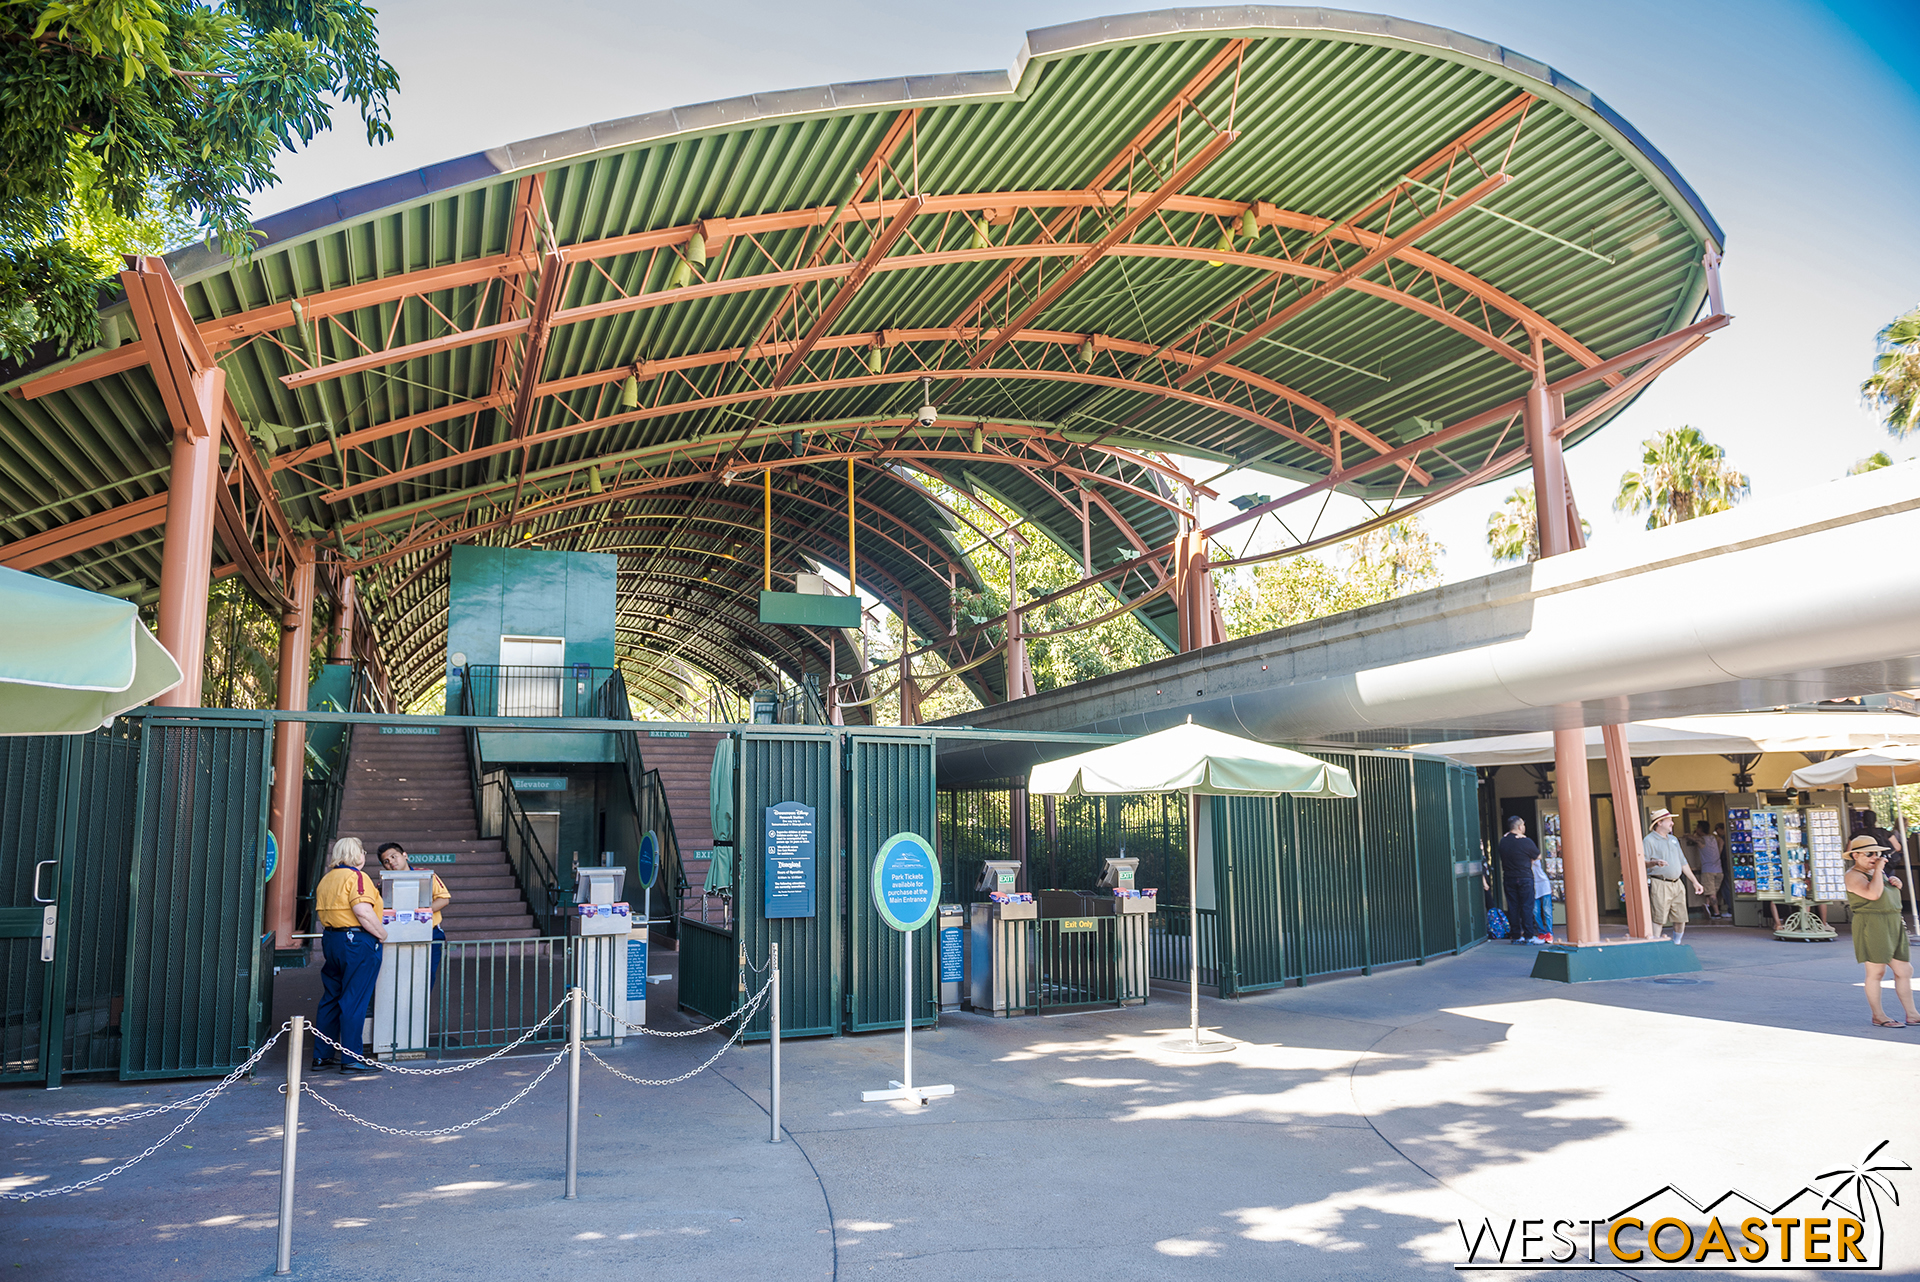 As a reader pointed out last time, the Downtown Disney monorail station did not actually close down for construction.  It was just down due to heat.  The station is still open normally.